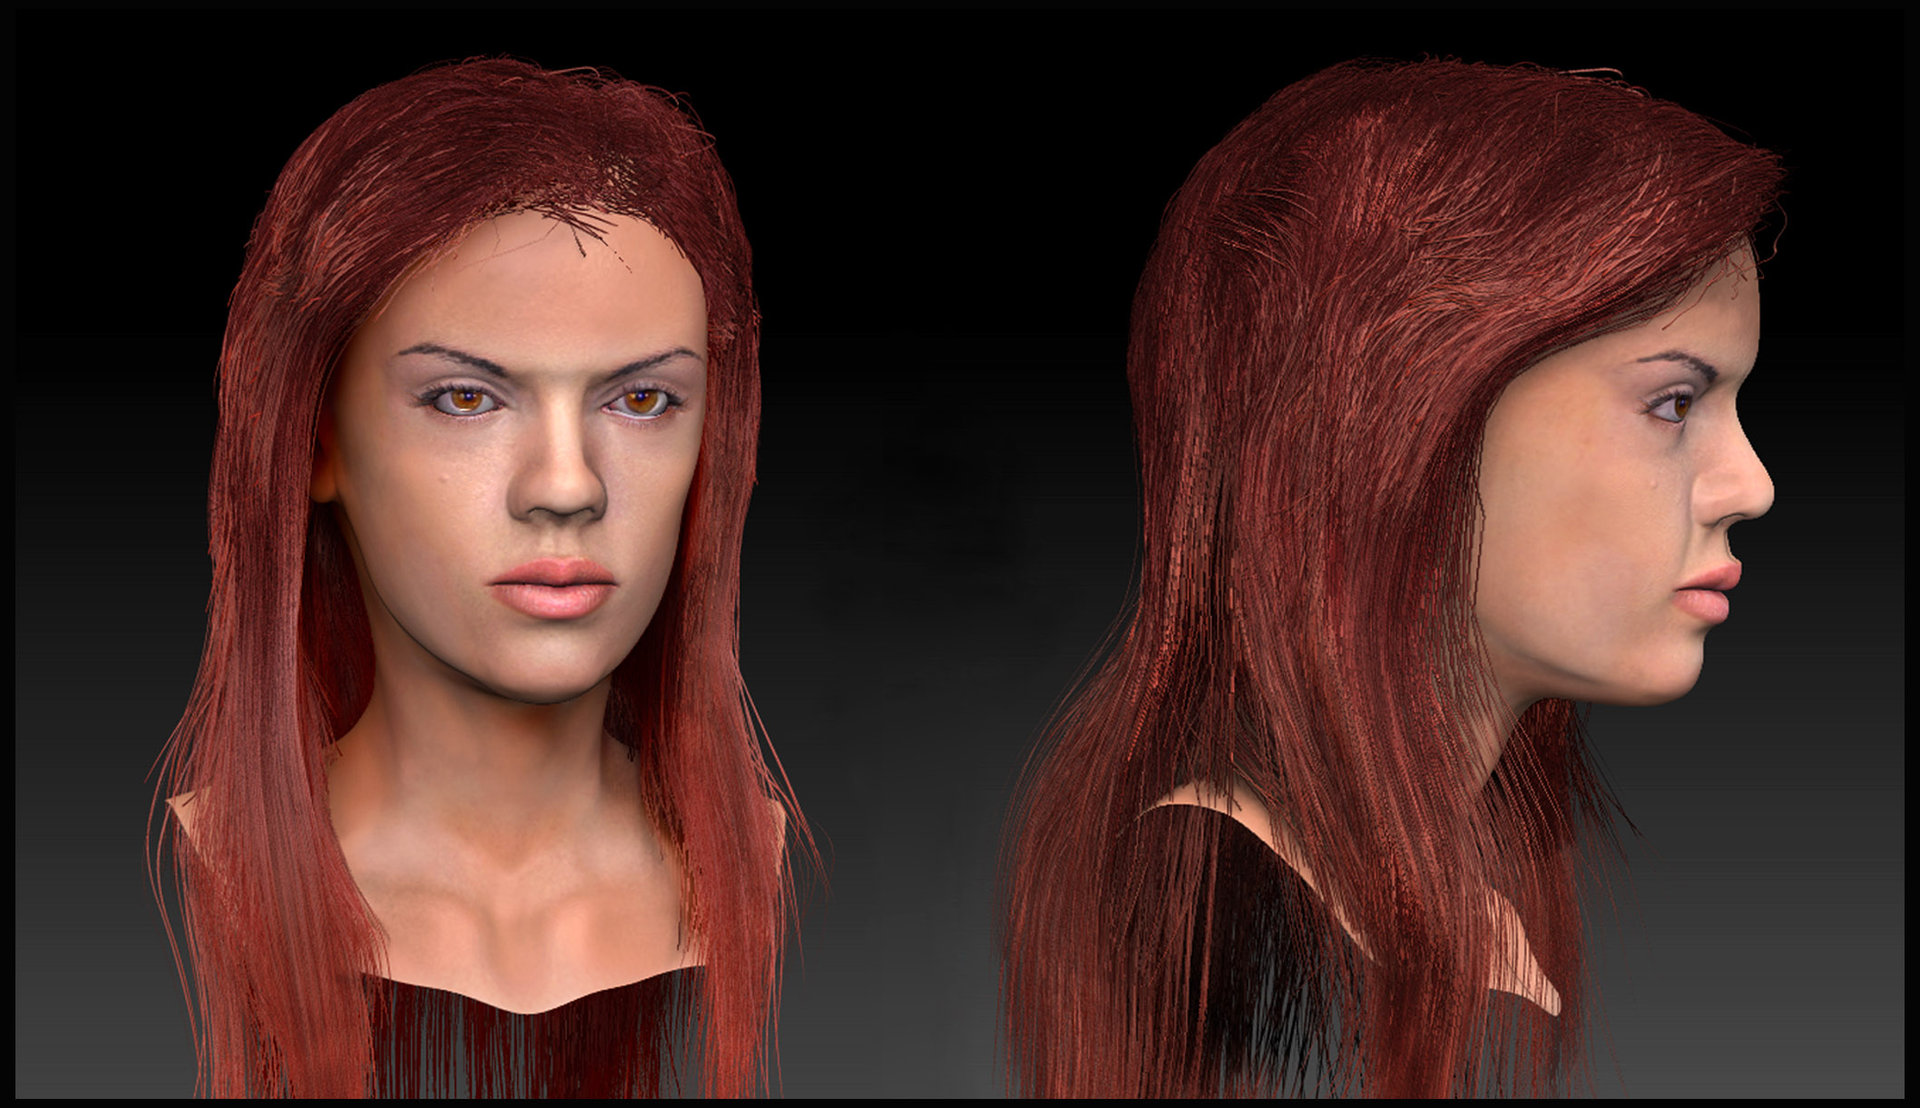 Female head by audreee d6io07p